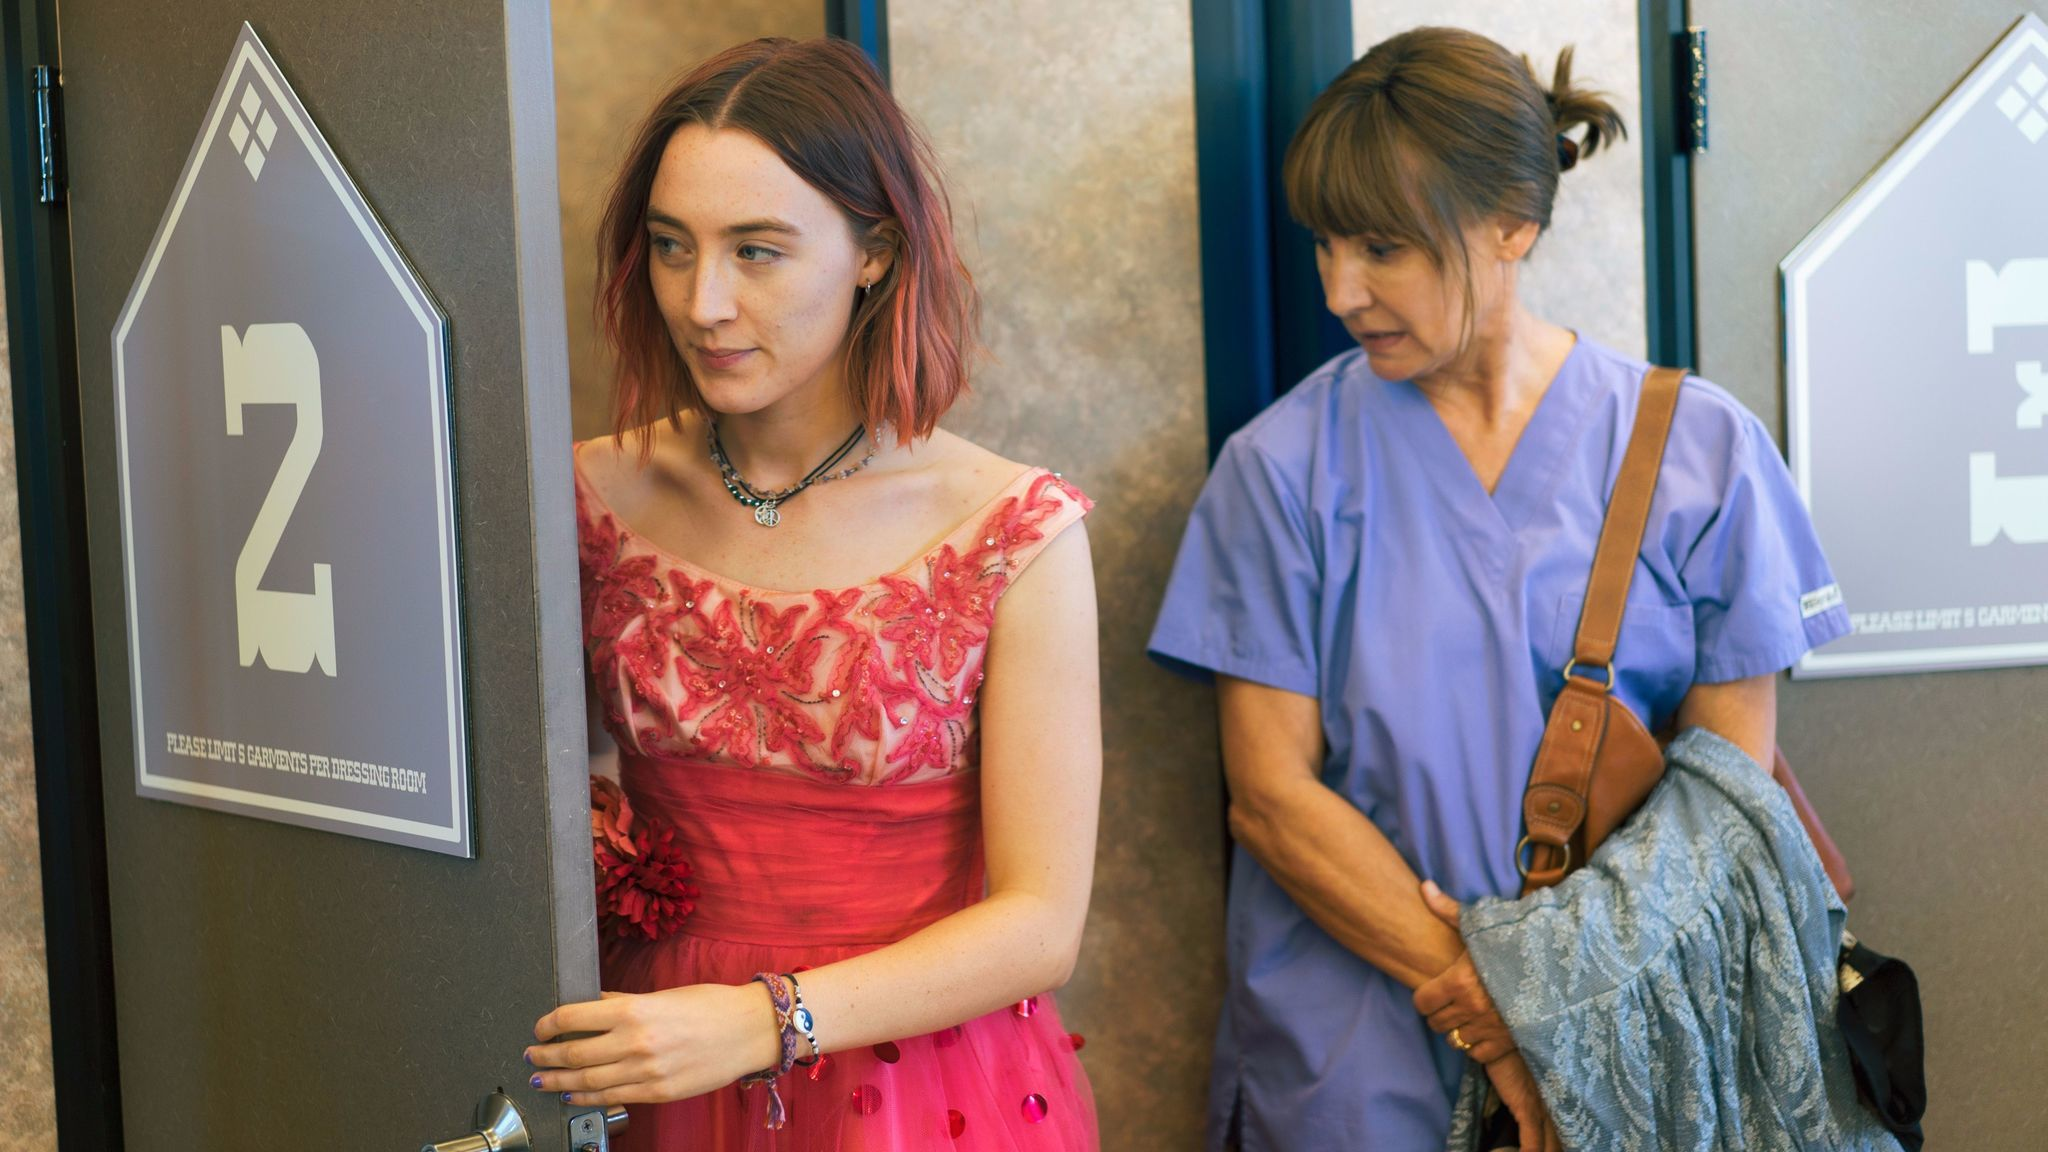 As Lady Bird, Ronan tries on prom dresses with her mom, played by Laurie Metcalf.